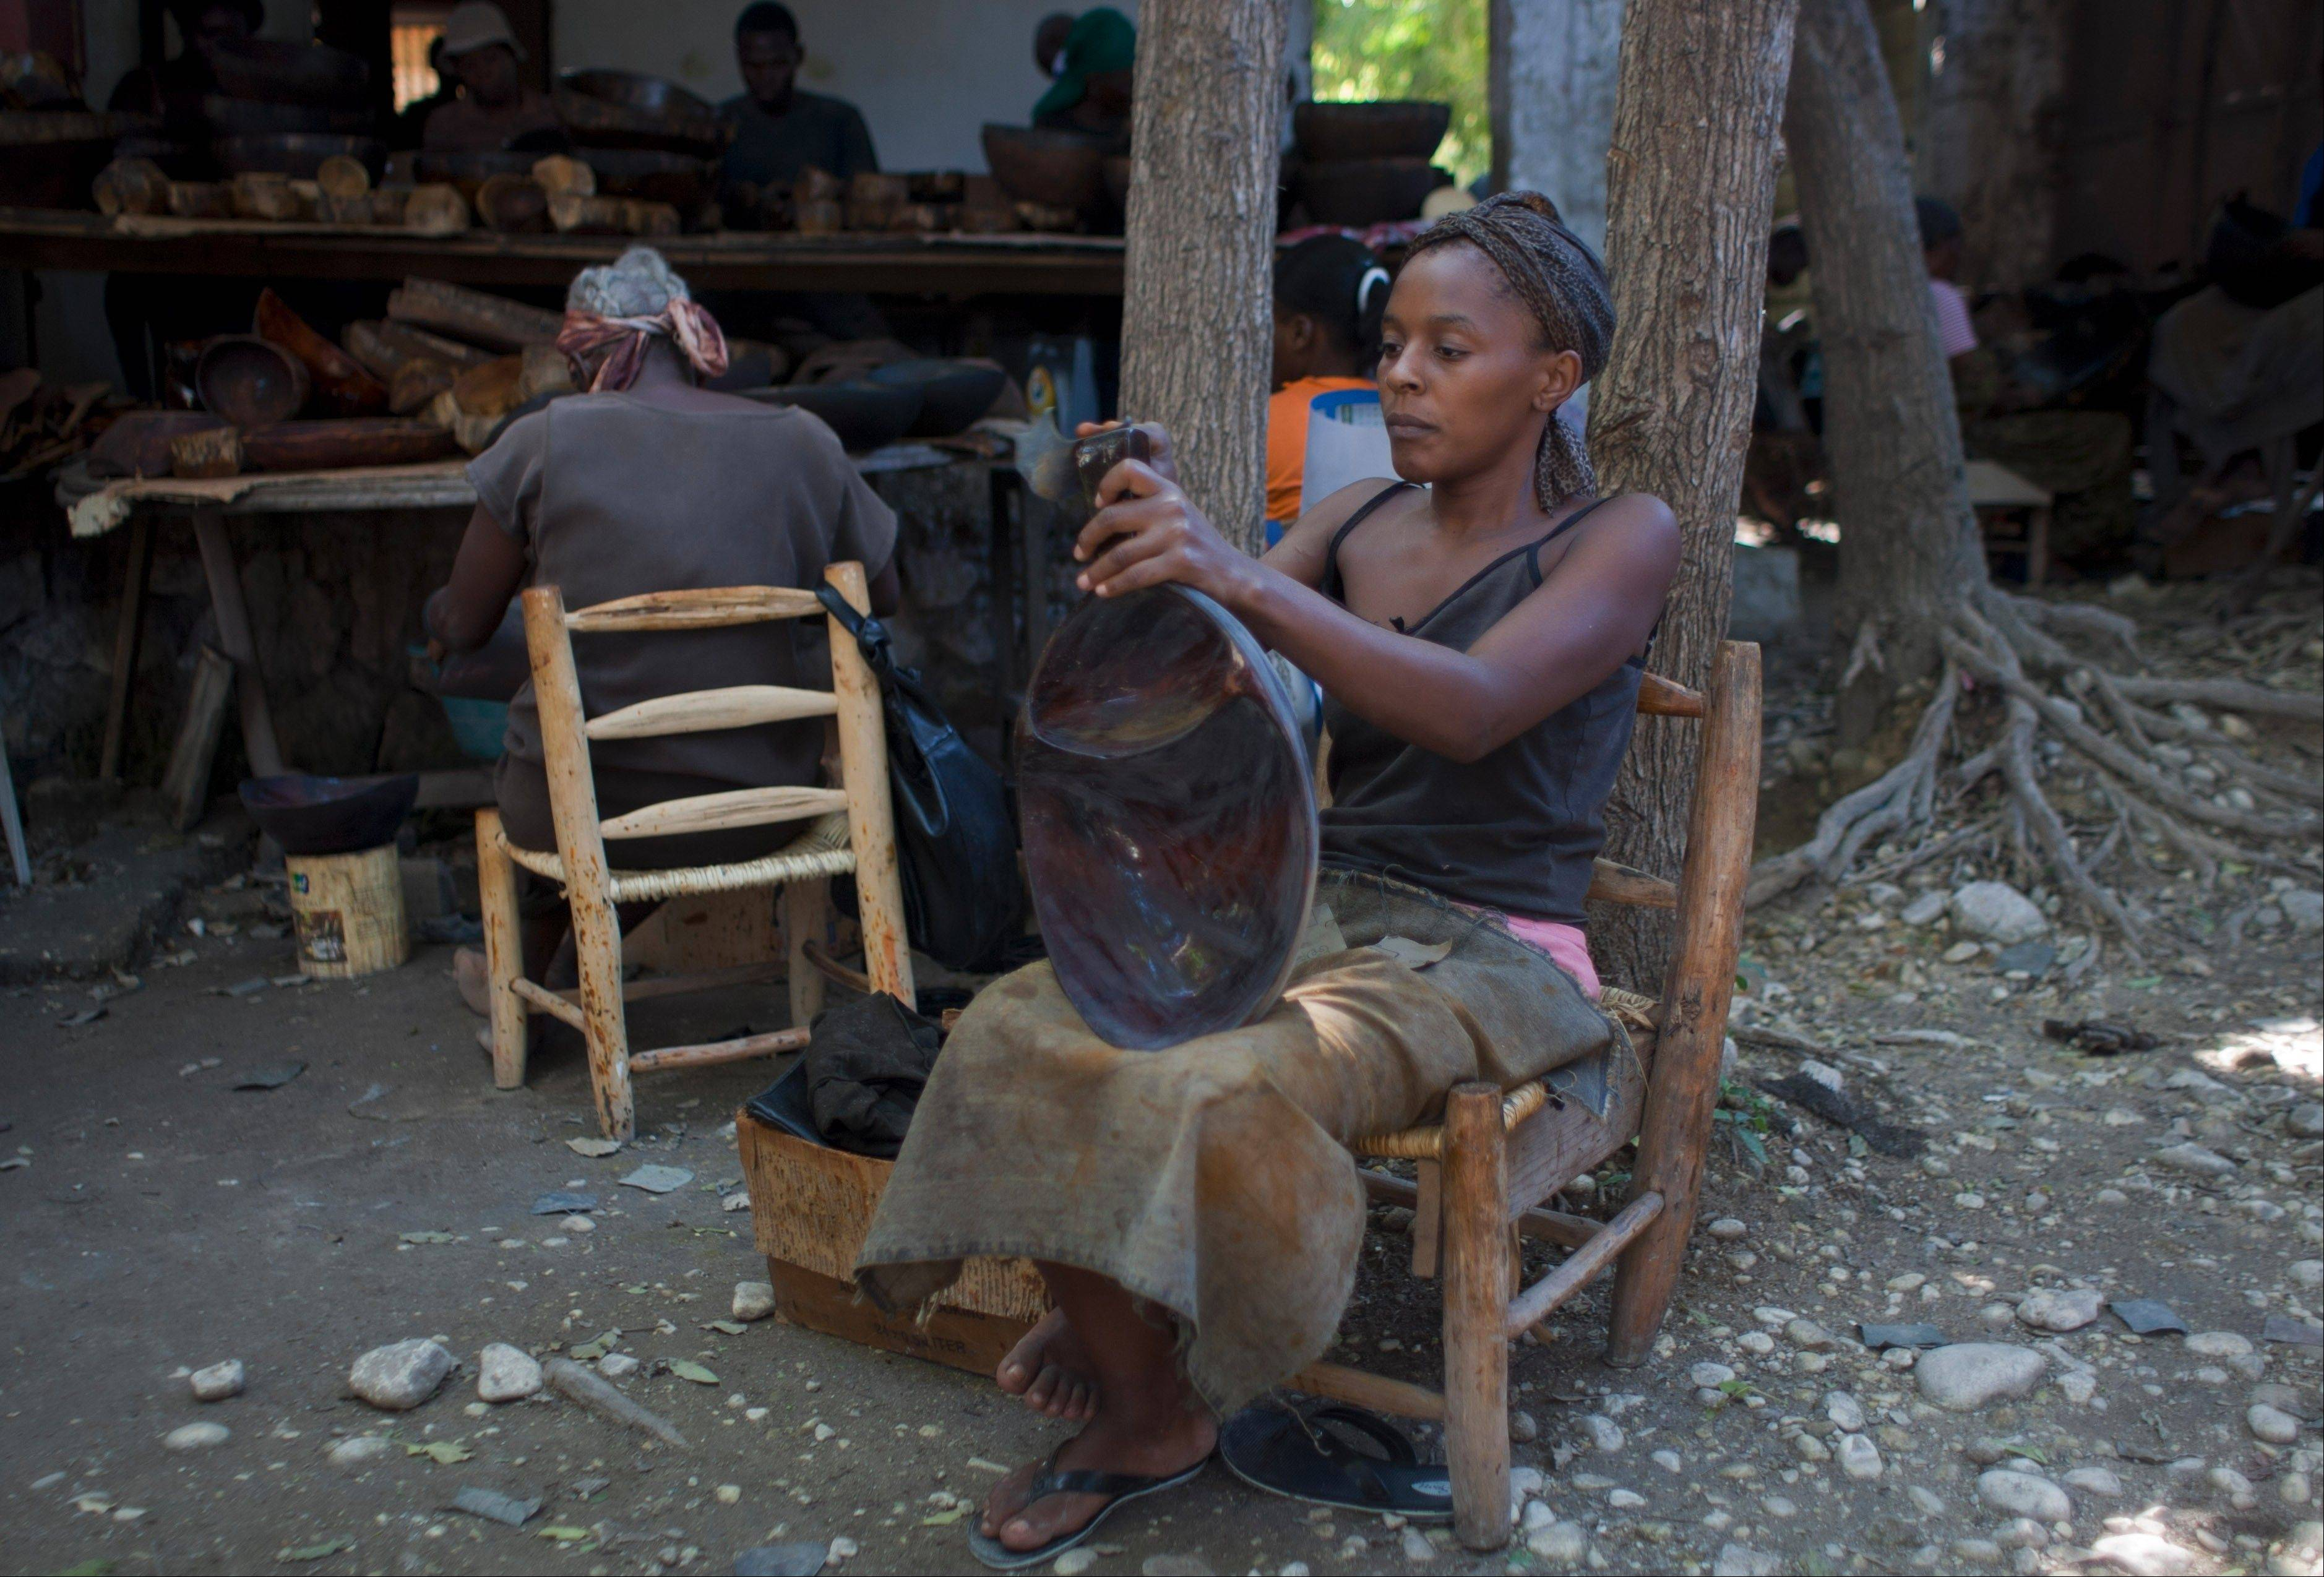 Marleine Land, 24, creates a decorative wooden bowl at the Einstein wood shop in Carrefour, Haiti. At least three major U.S. retailers and three high-end designers are now working with at least five artisan groups to export Haitian arts and crafts.